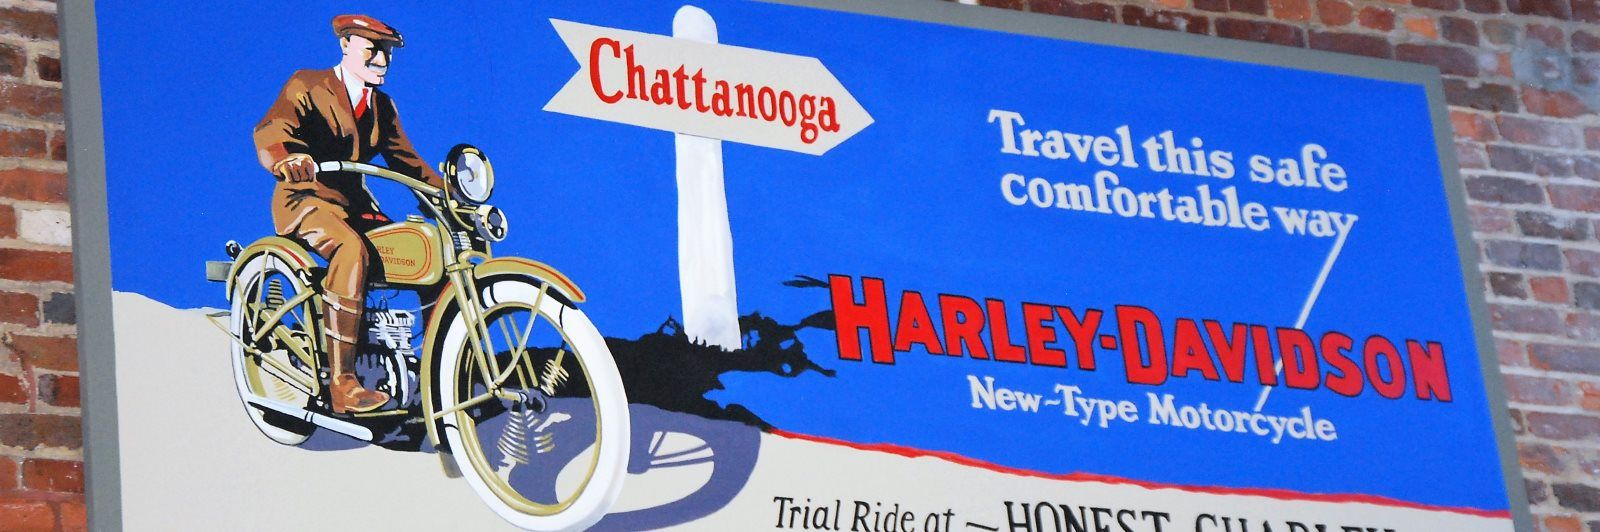 chattanooga_header_8_x.jpg